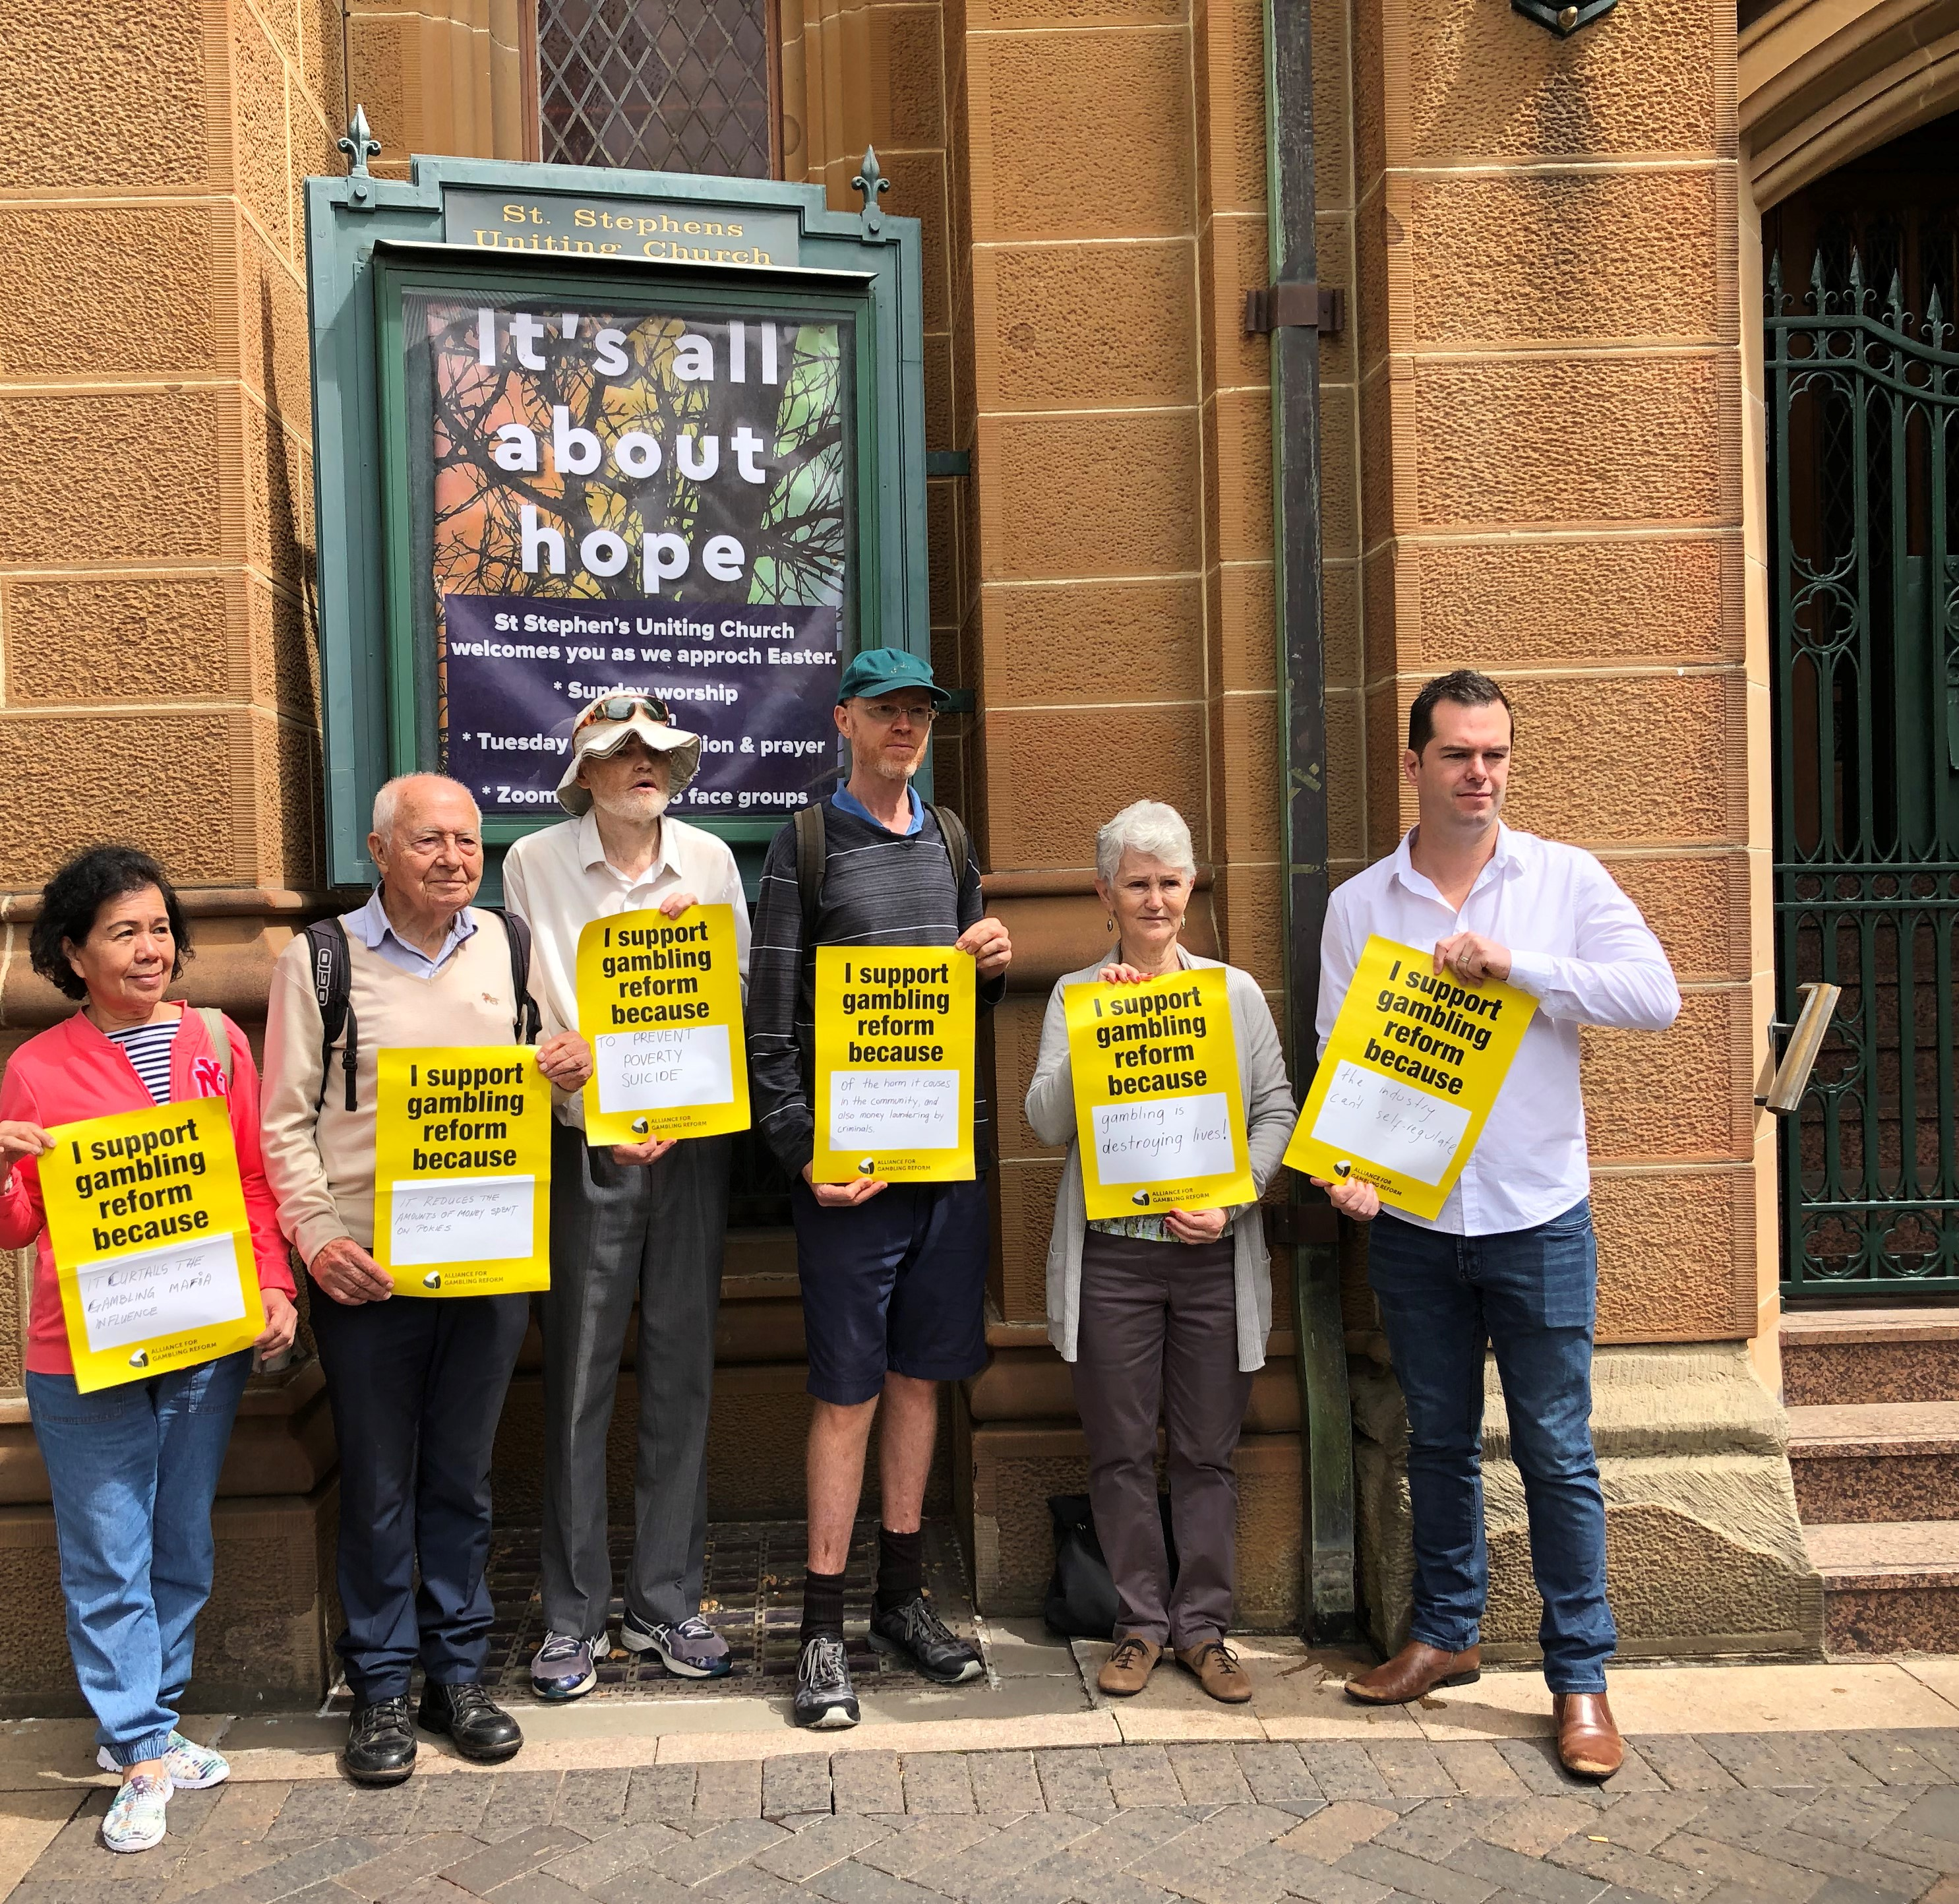 """A group of people holding posters stating """"I support gambling reform"""" in front of a church sign saying """"It's all about hope"""""""